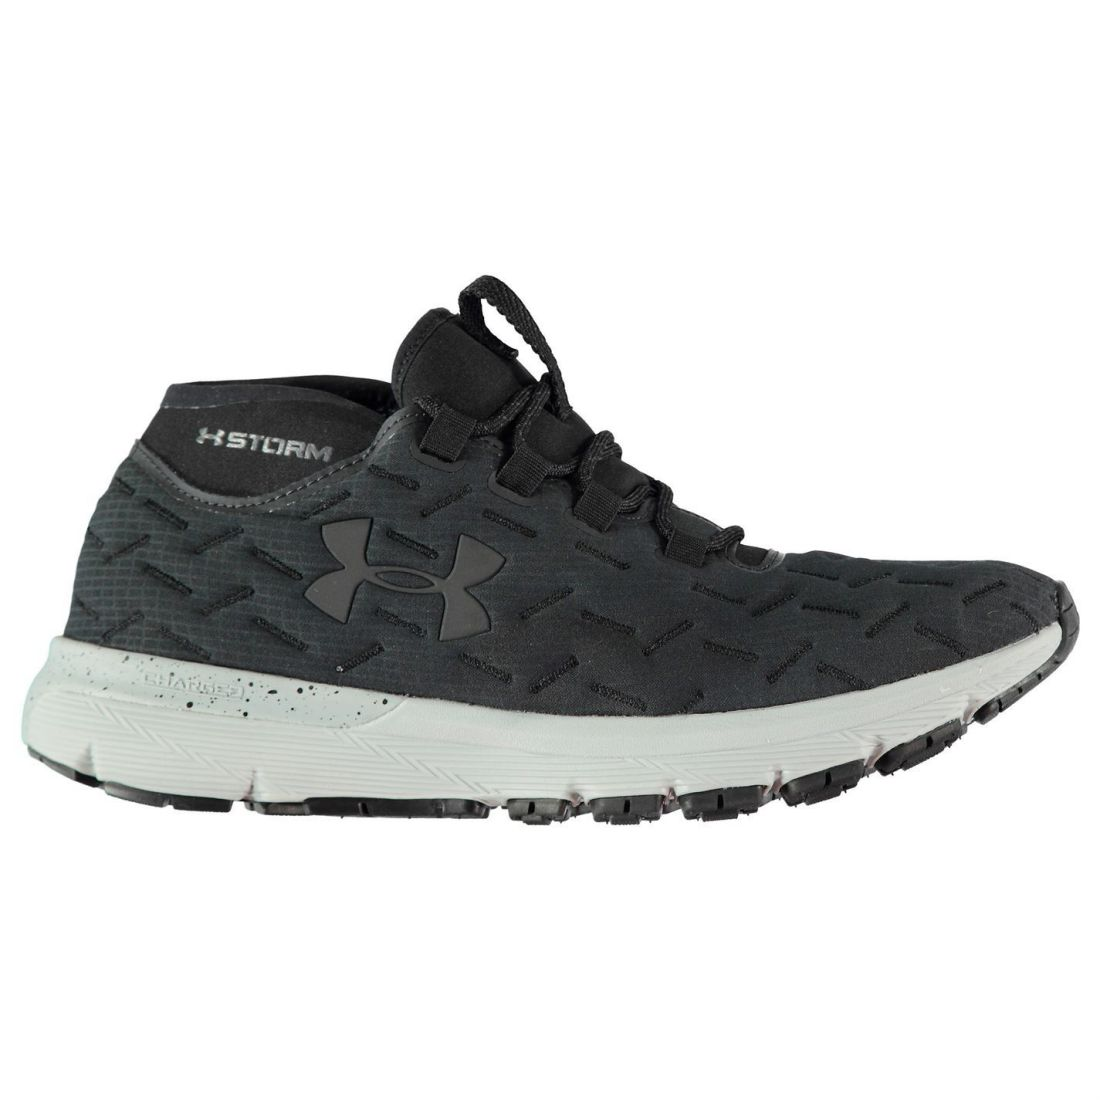 negro Armour Reactor Zapatos Cordones Corredores Run Gents Hombres correr gris para Charged Under PEIwqdP